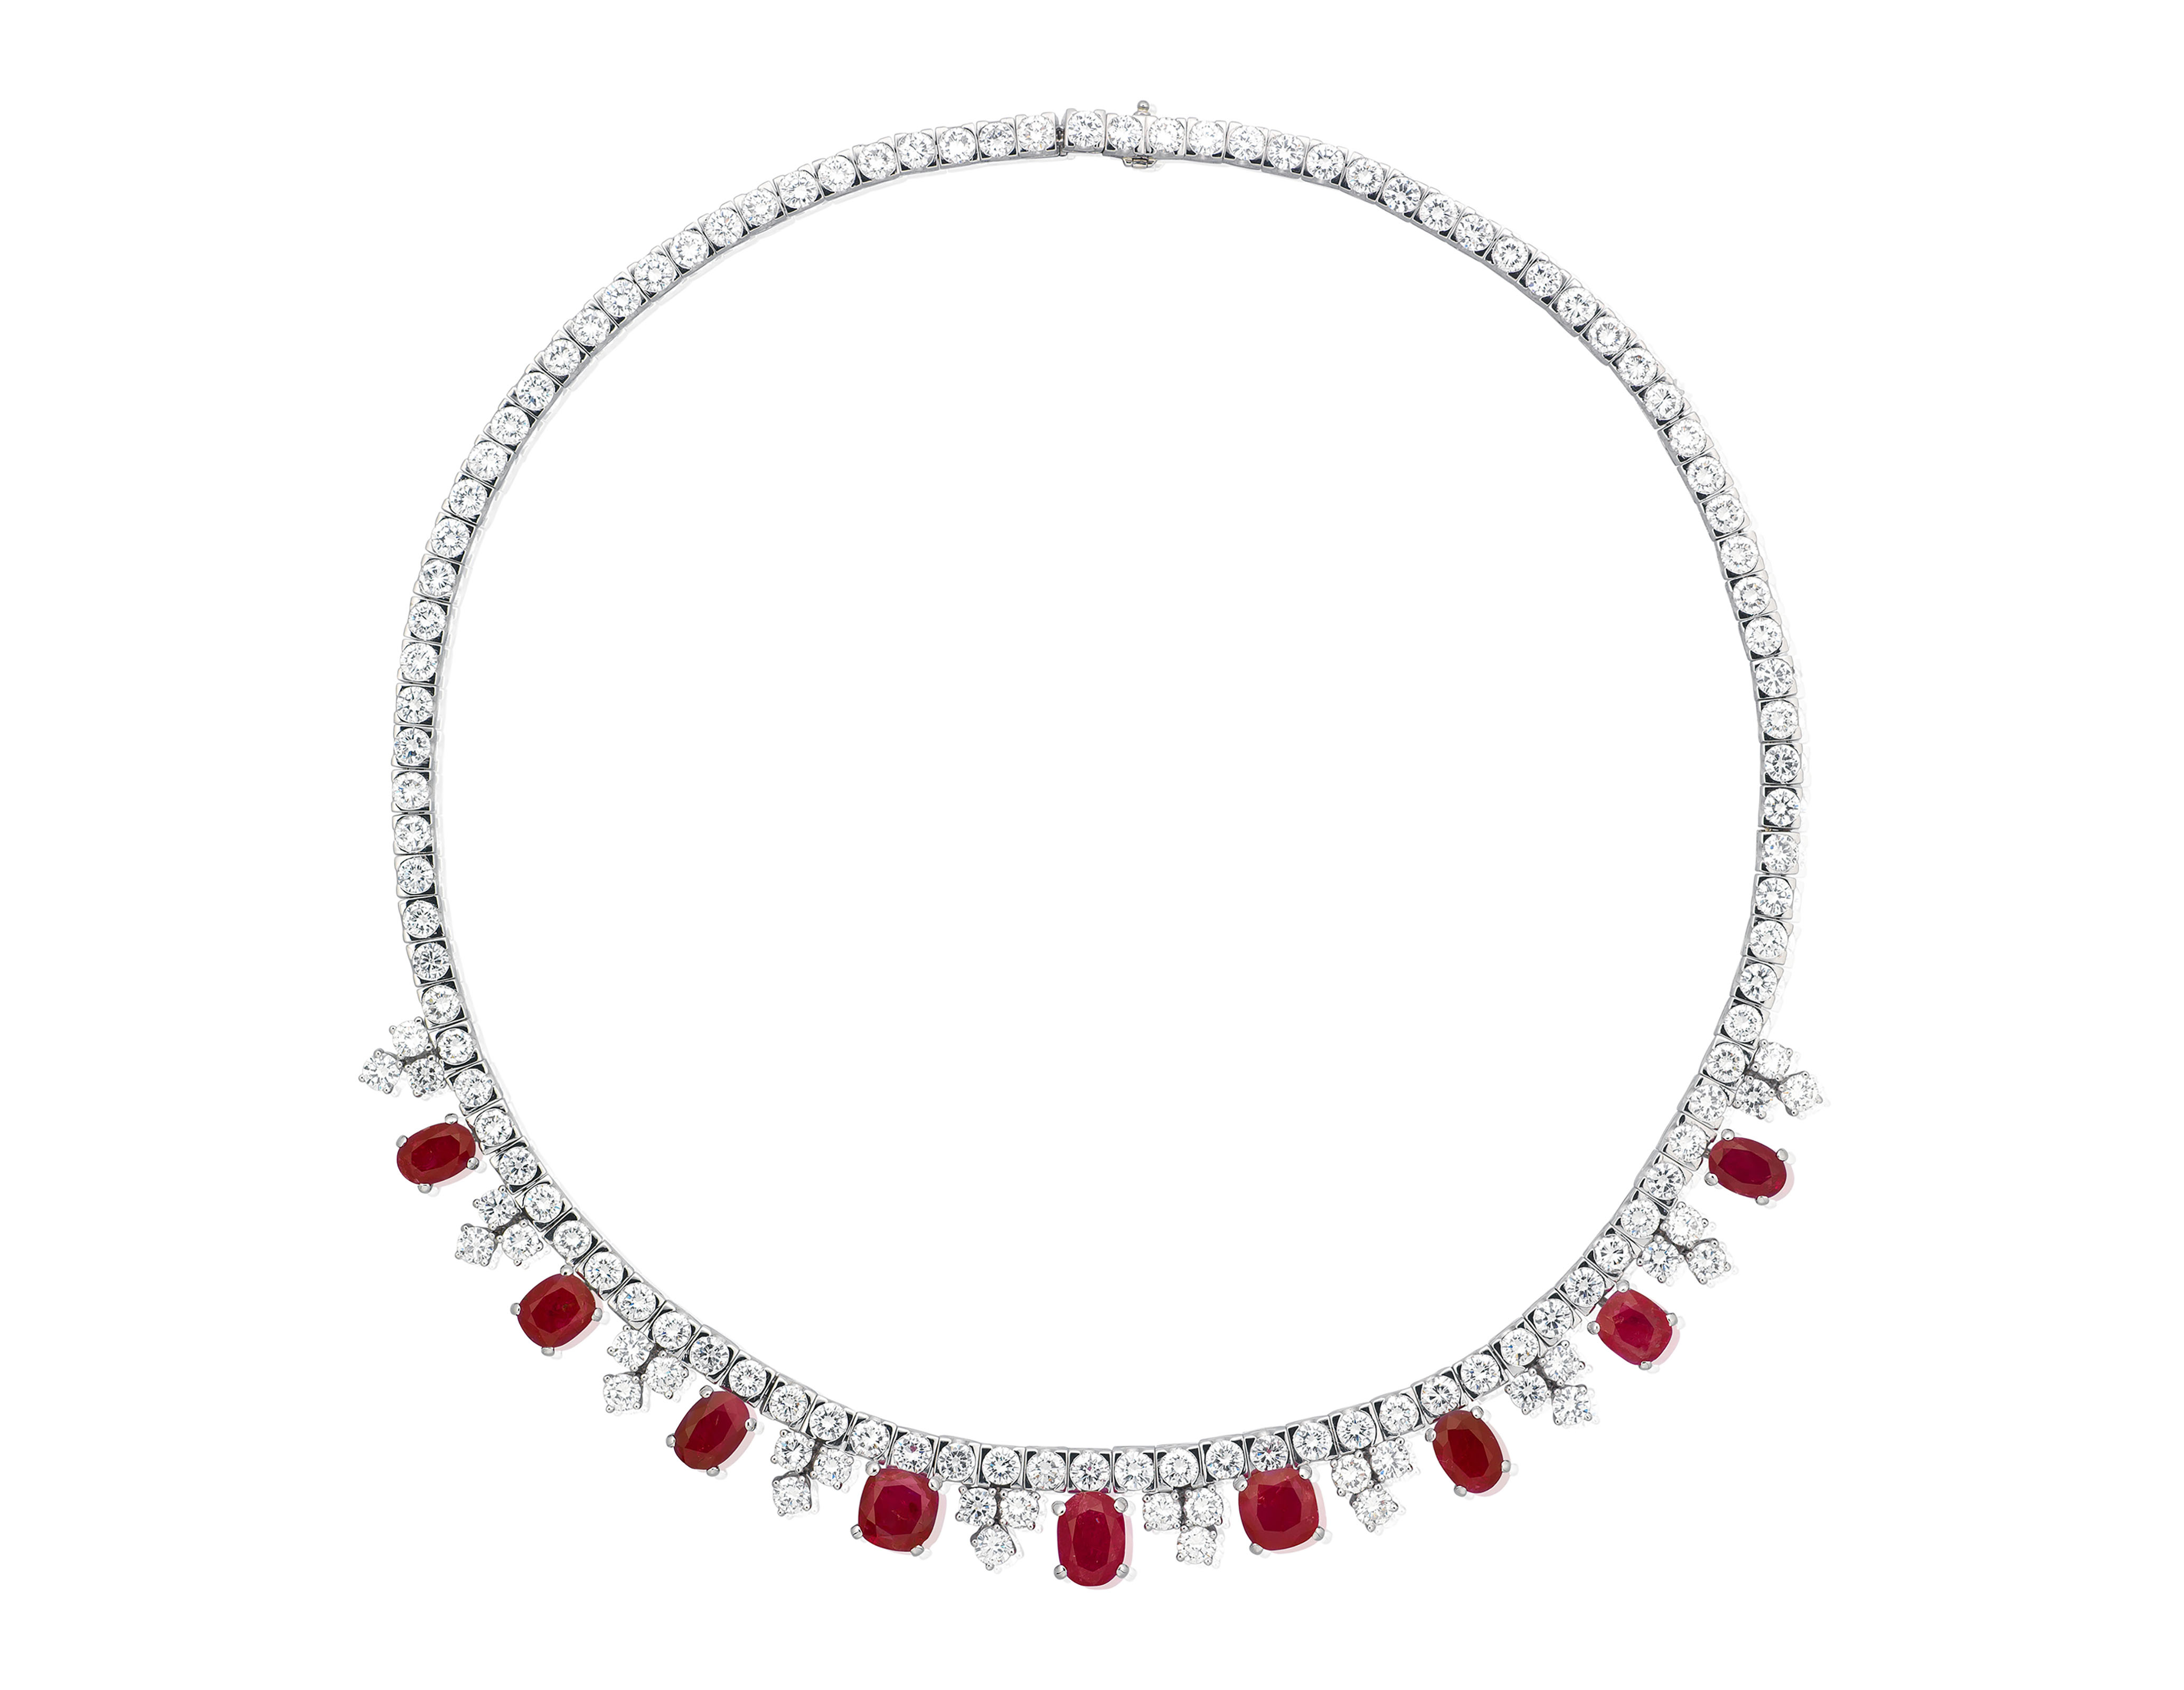 RUBY AND DIAMOND NECKLACE WITH GIA REPORT